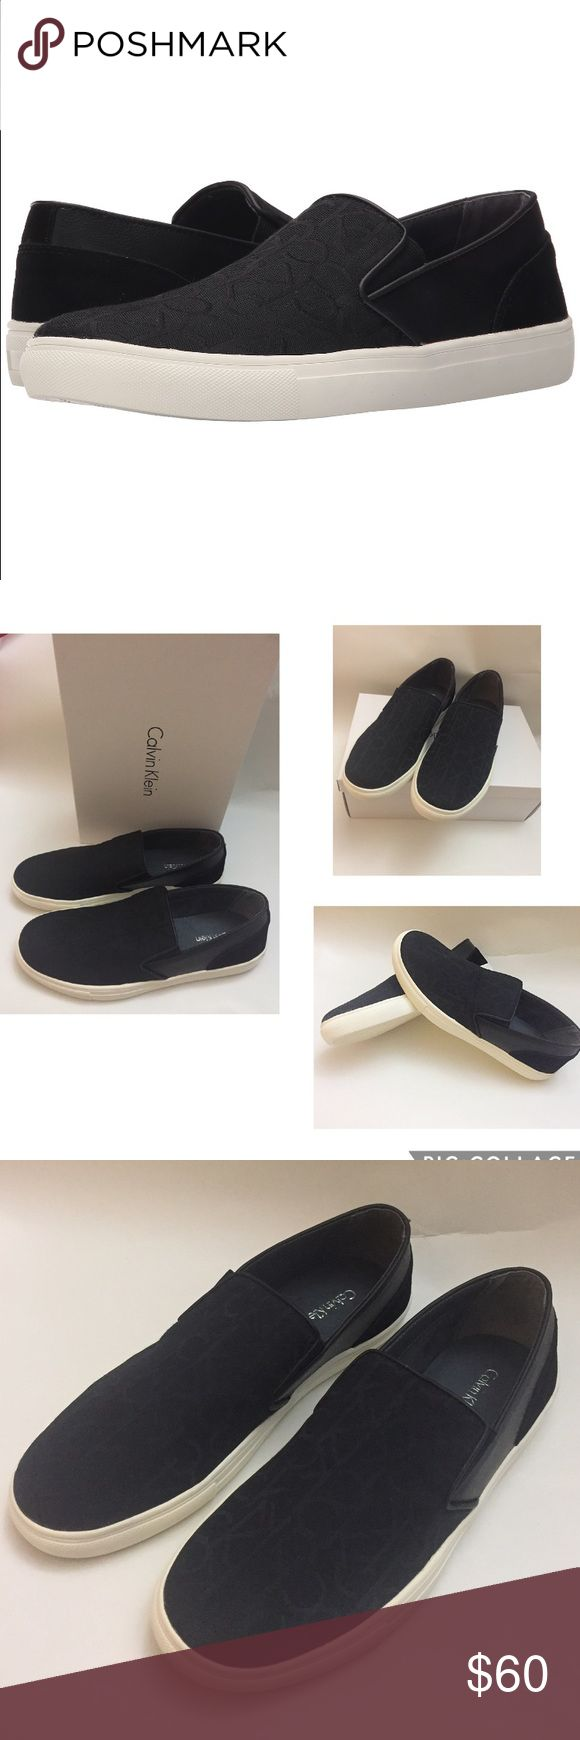 Calvin Klein phoenix Jacquard/Smooth Sneakers Authentic new with box. Let your style become reborn with the Phoenix sneaker. Canvas and synthetic upper. Slip-on. Brand logo pattern throughout. Soft fabric lining and footbed. Rubber outsole. Imported. Men's Size 11.5 M. Calvin Klein Shoes Loafers & Slip-Ons